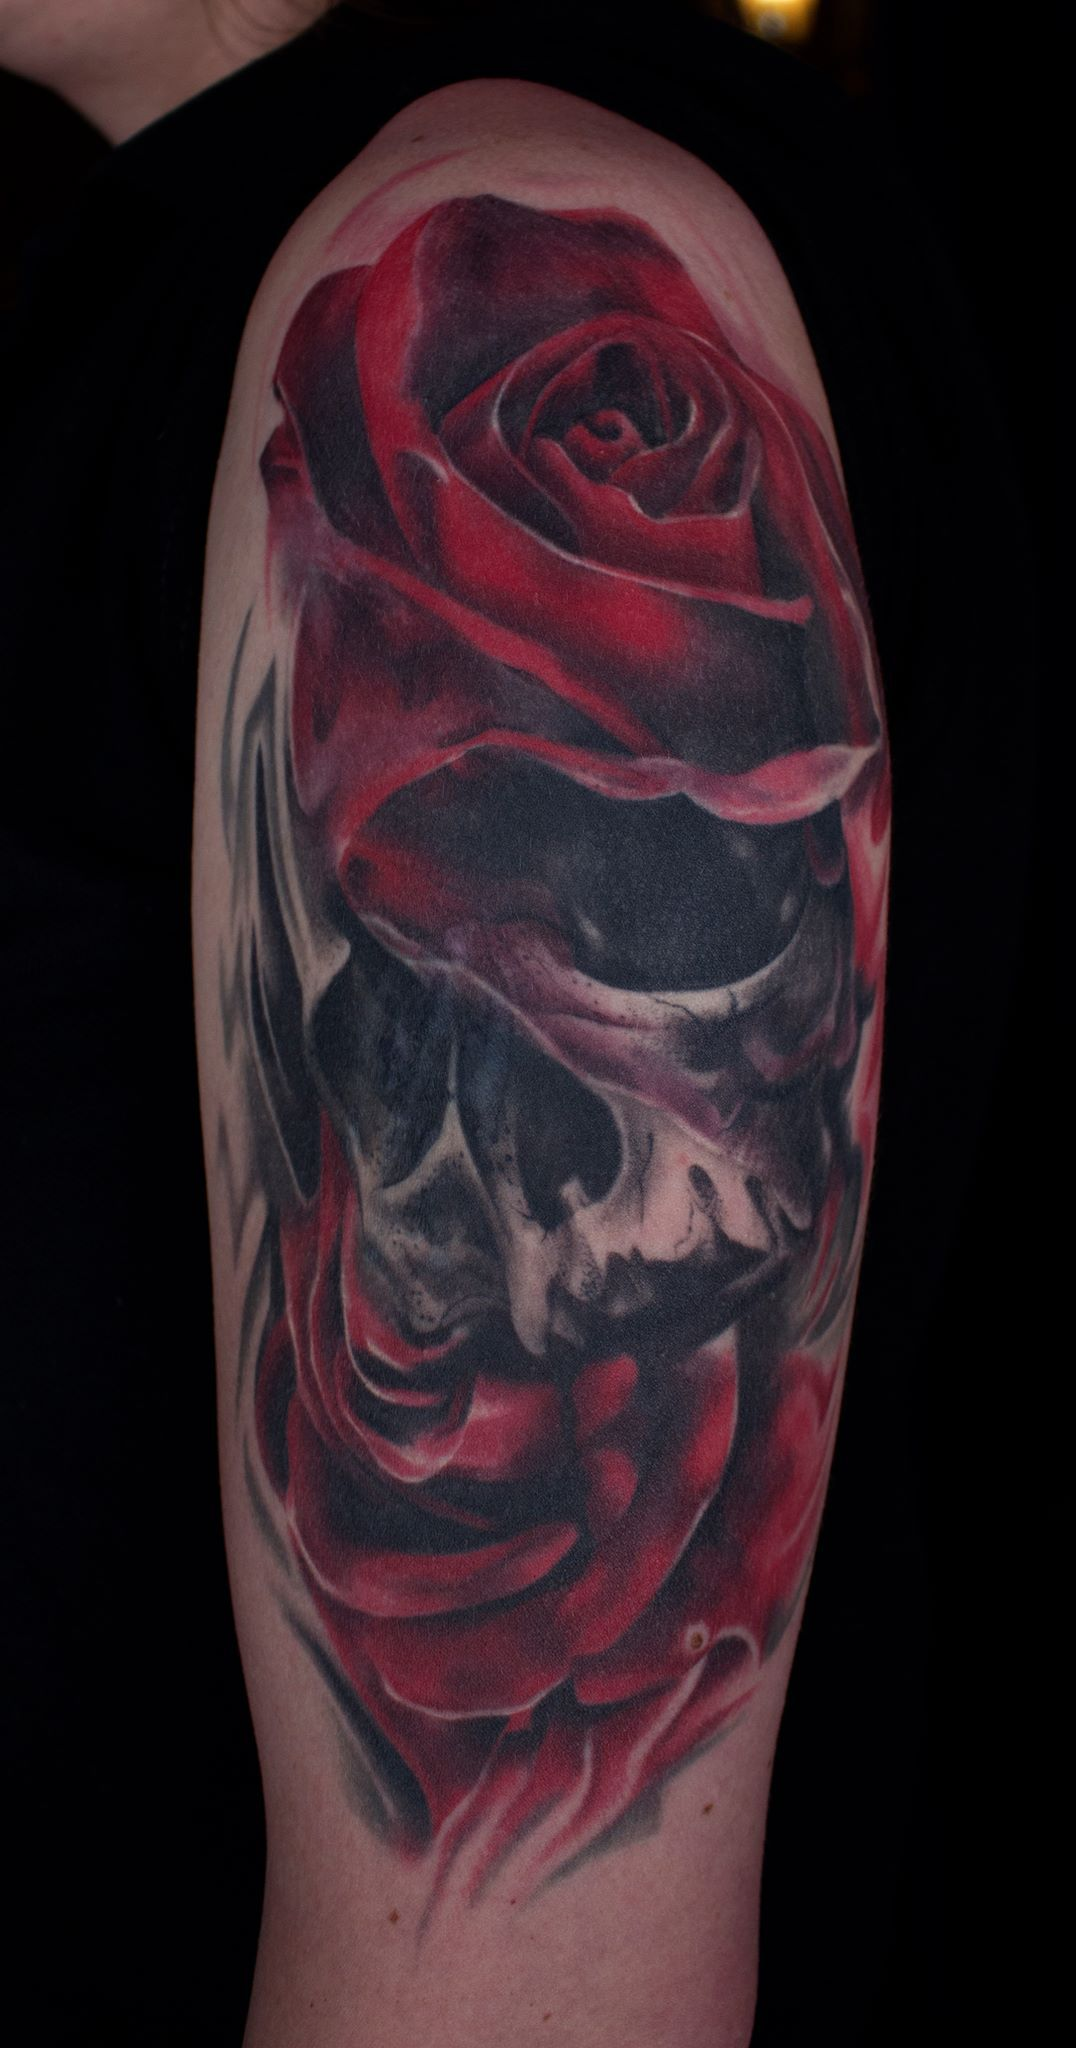 Skull And Rose Tattoo By Vlad Availability At Holy Trinity Tattoo Studio Skull Rose Tattoos Tattoos Rose Tattoo Thigh